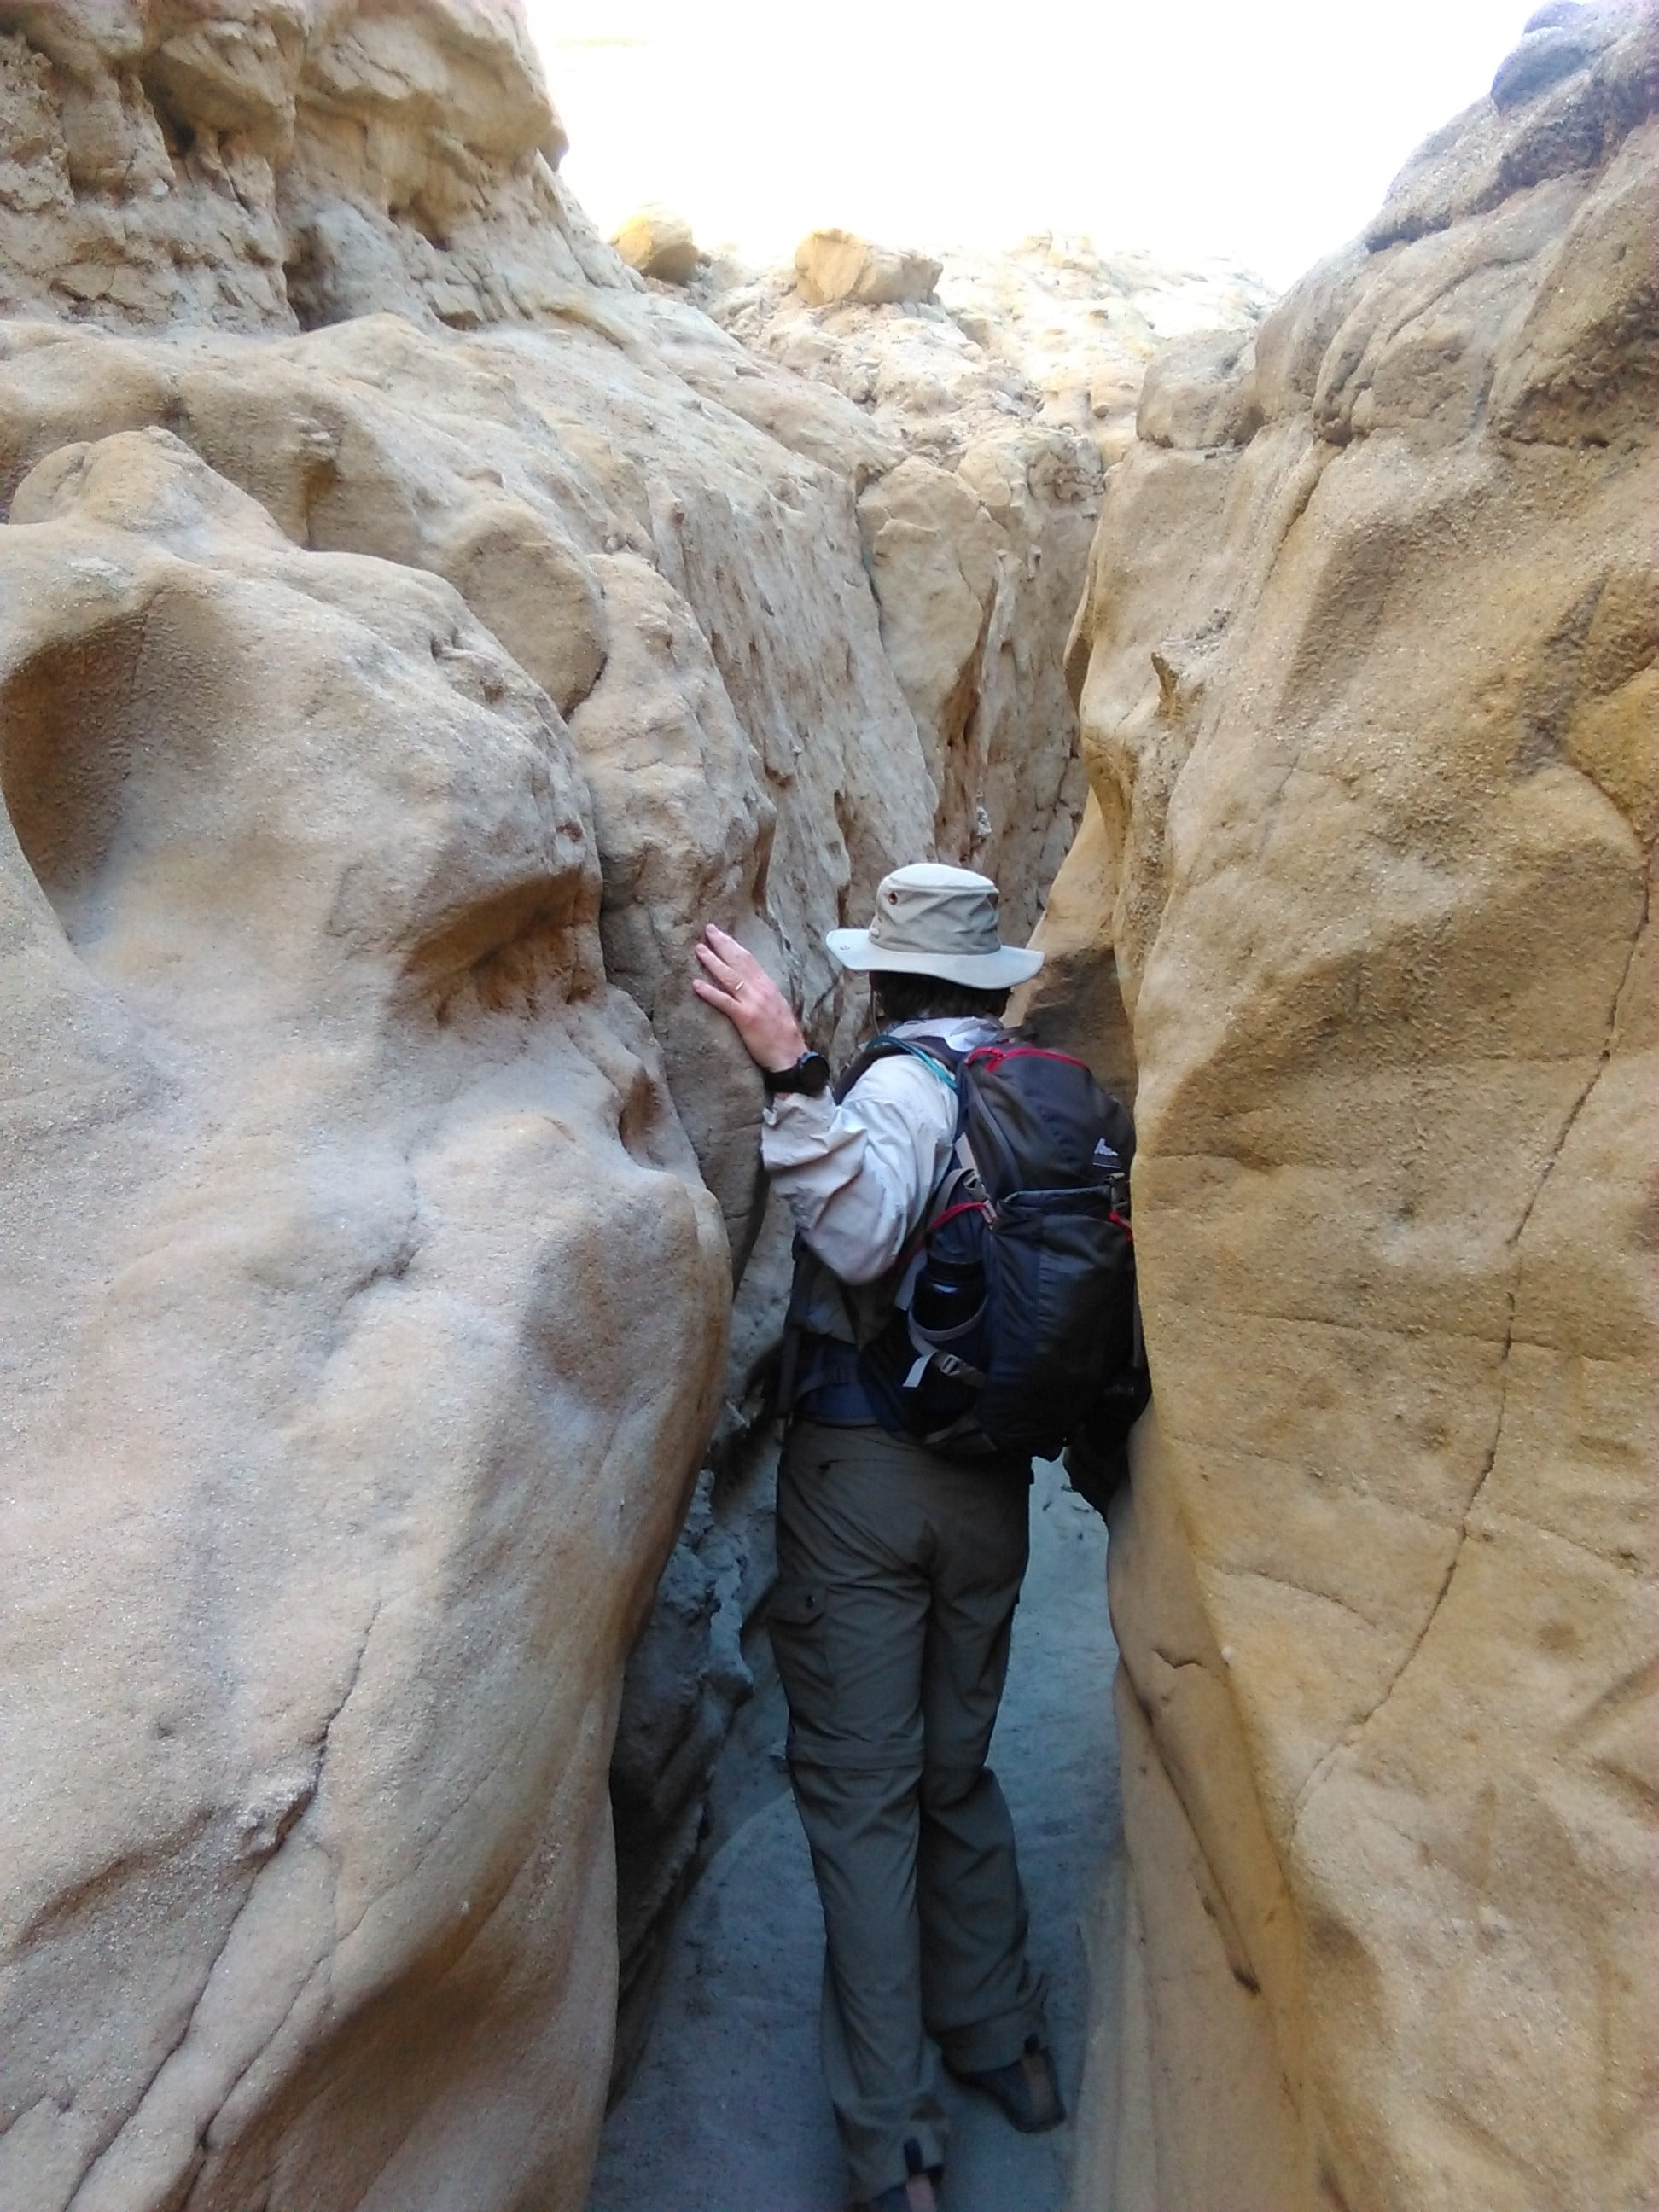 Hike The Slot at Anza-Borrego Desert State Park